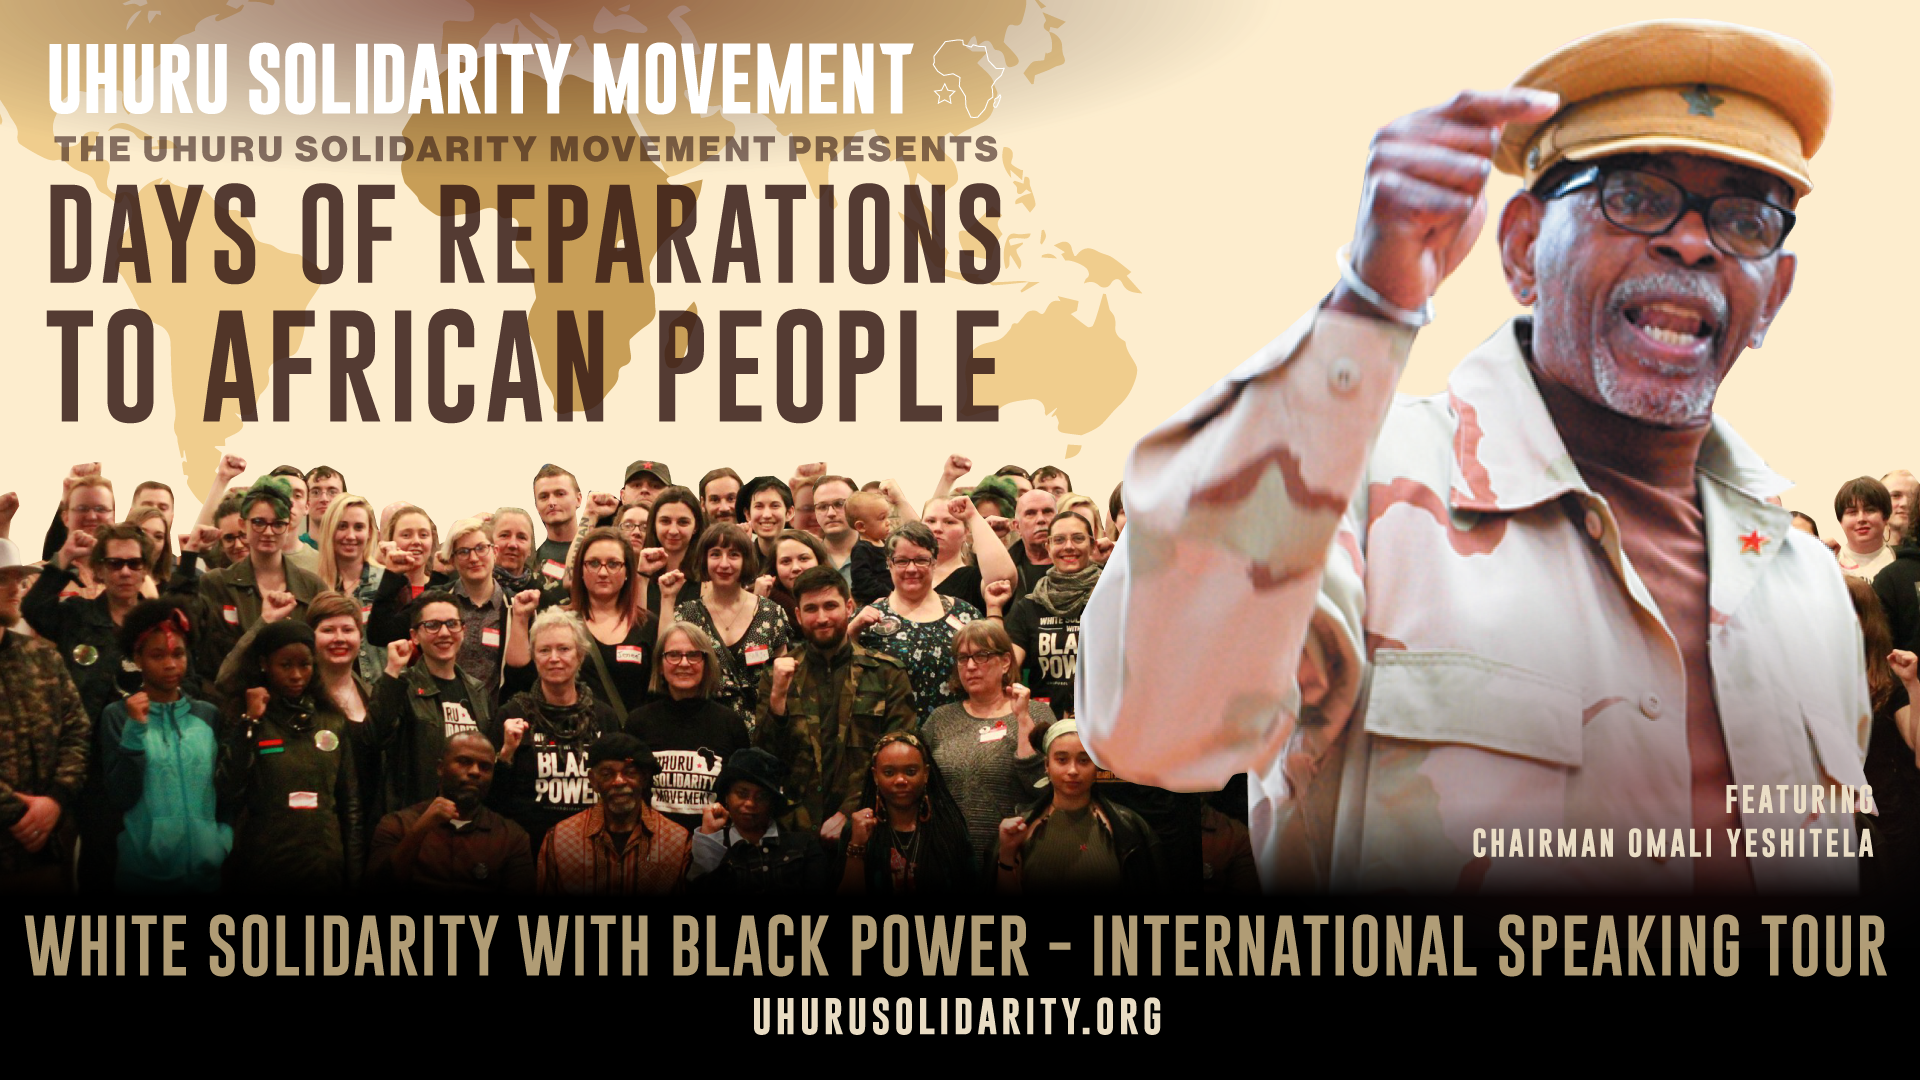 2018 International Speaking Tour Days of Reparations to African People